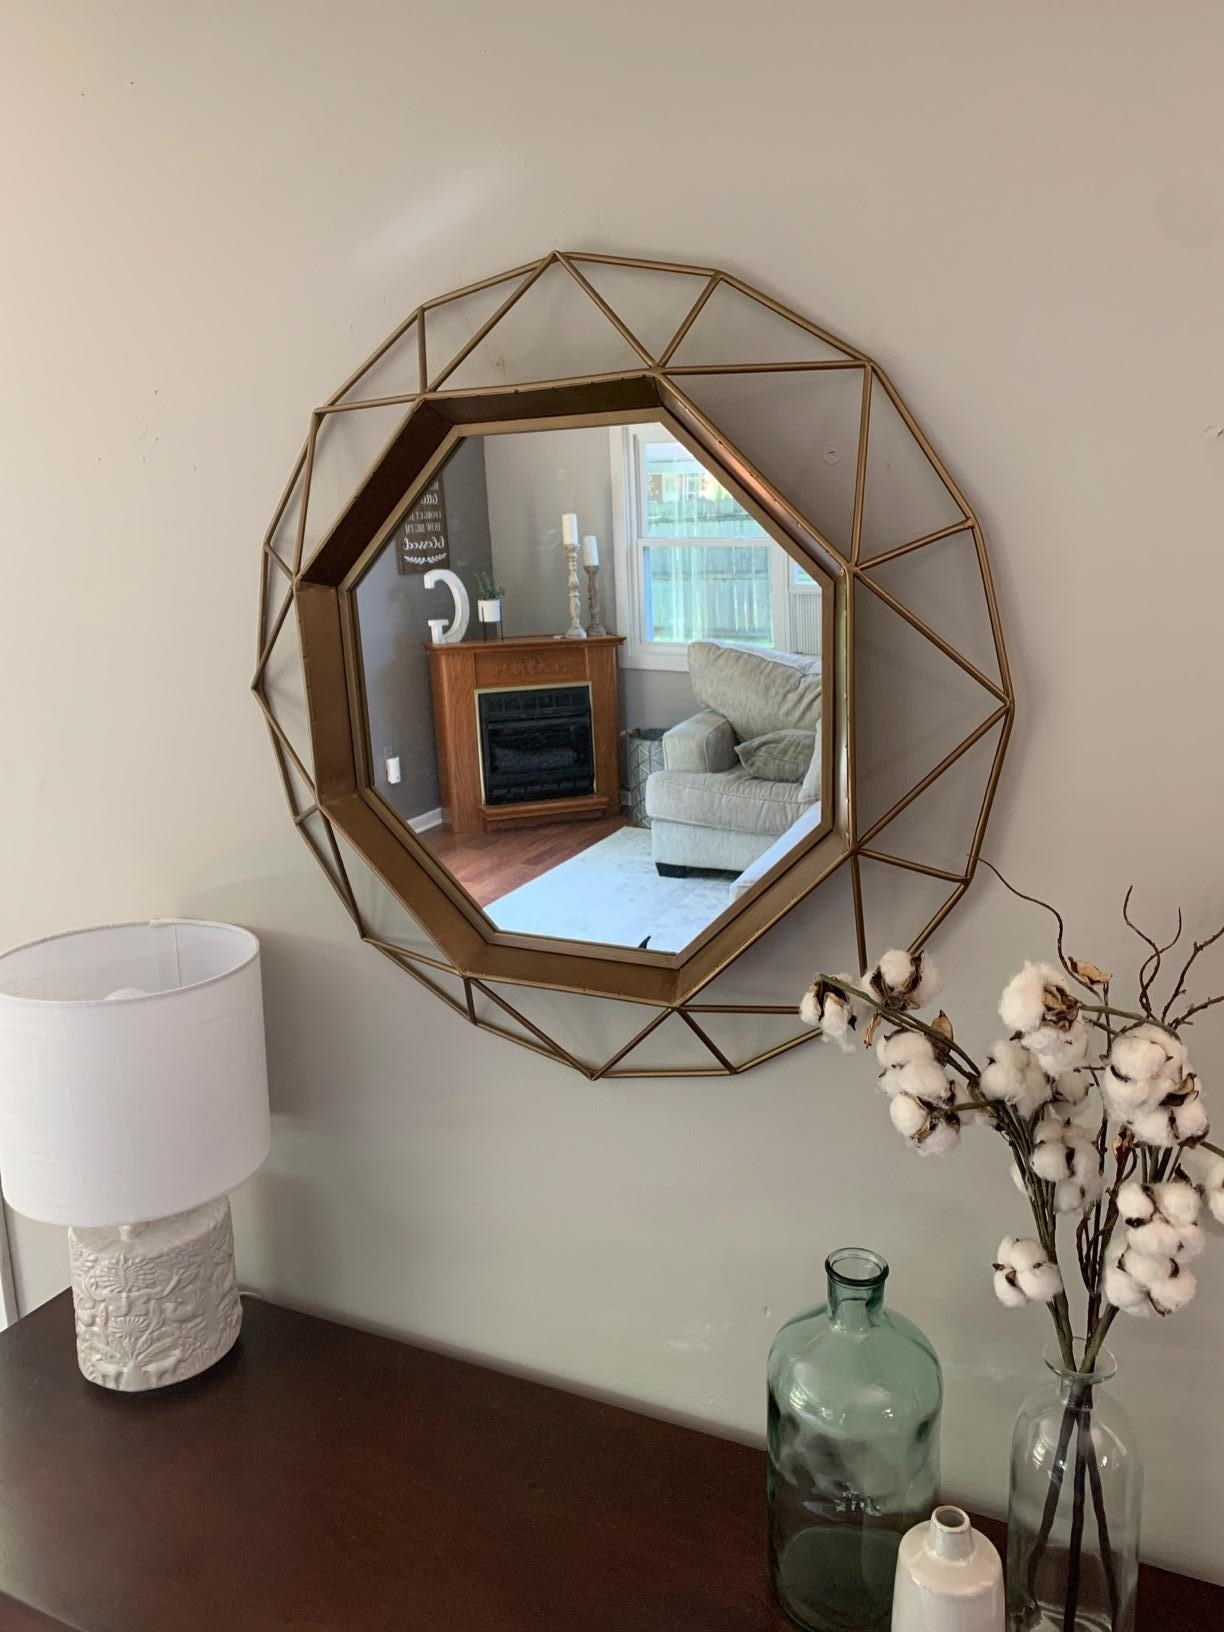 reviewer image of the gold geometric mirror hanging on a wall above a credenza